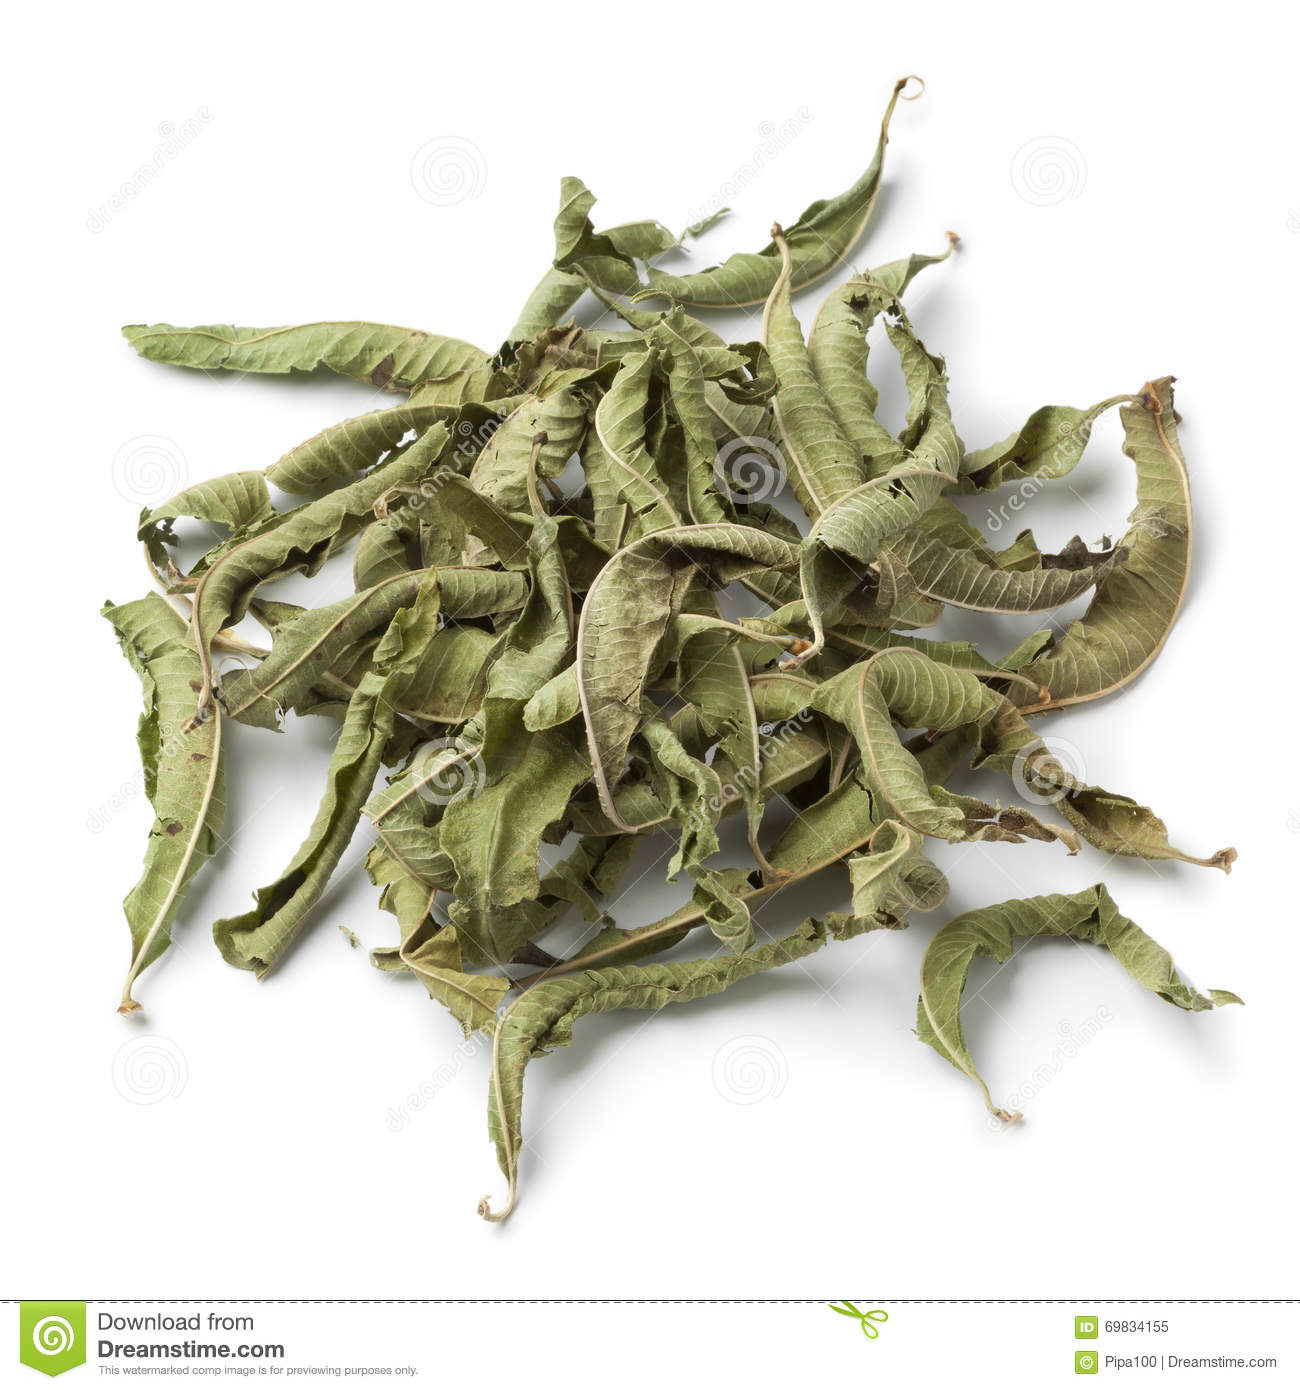 Heap Of Dried Vervain Leaves Stock Image - Image of herbal, medicine